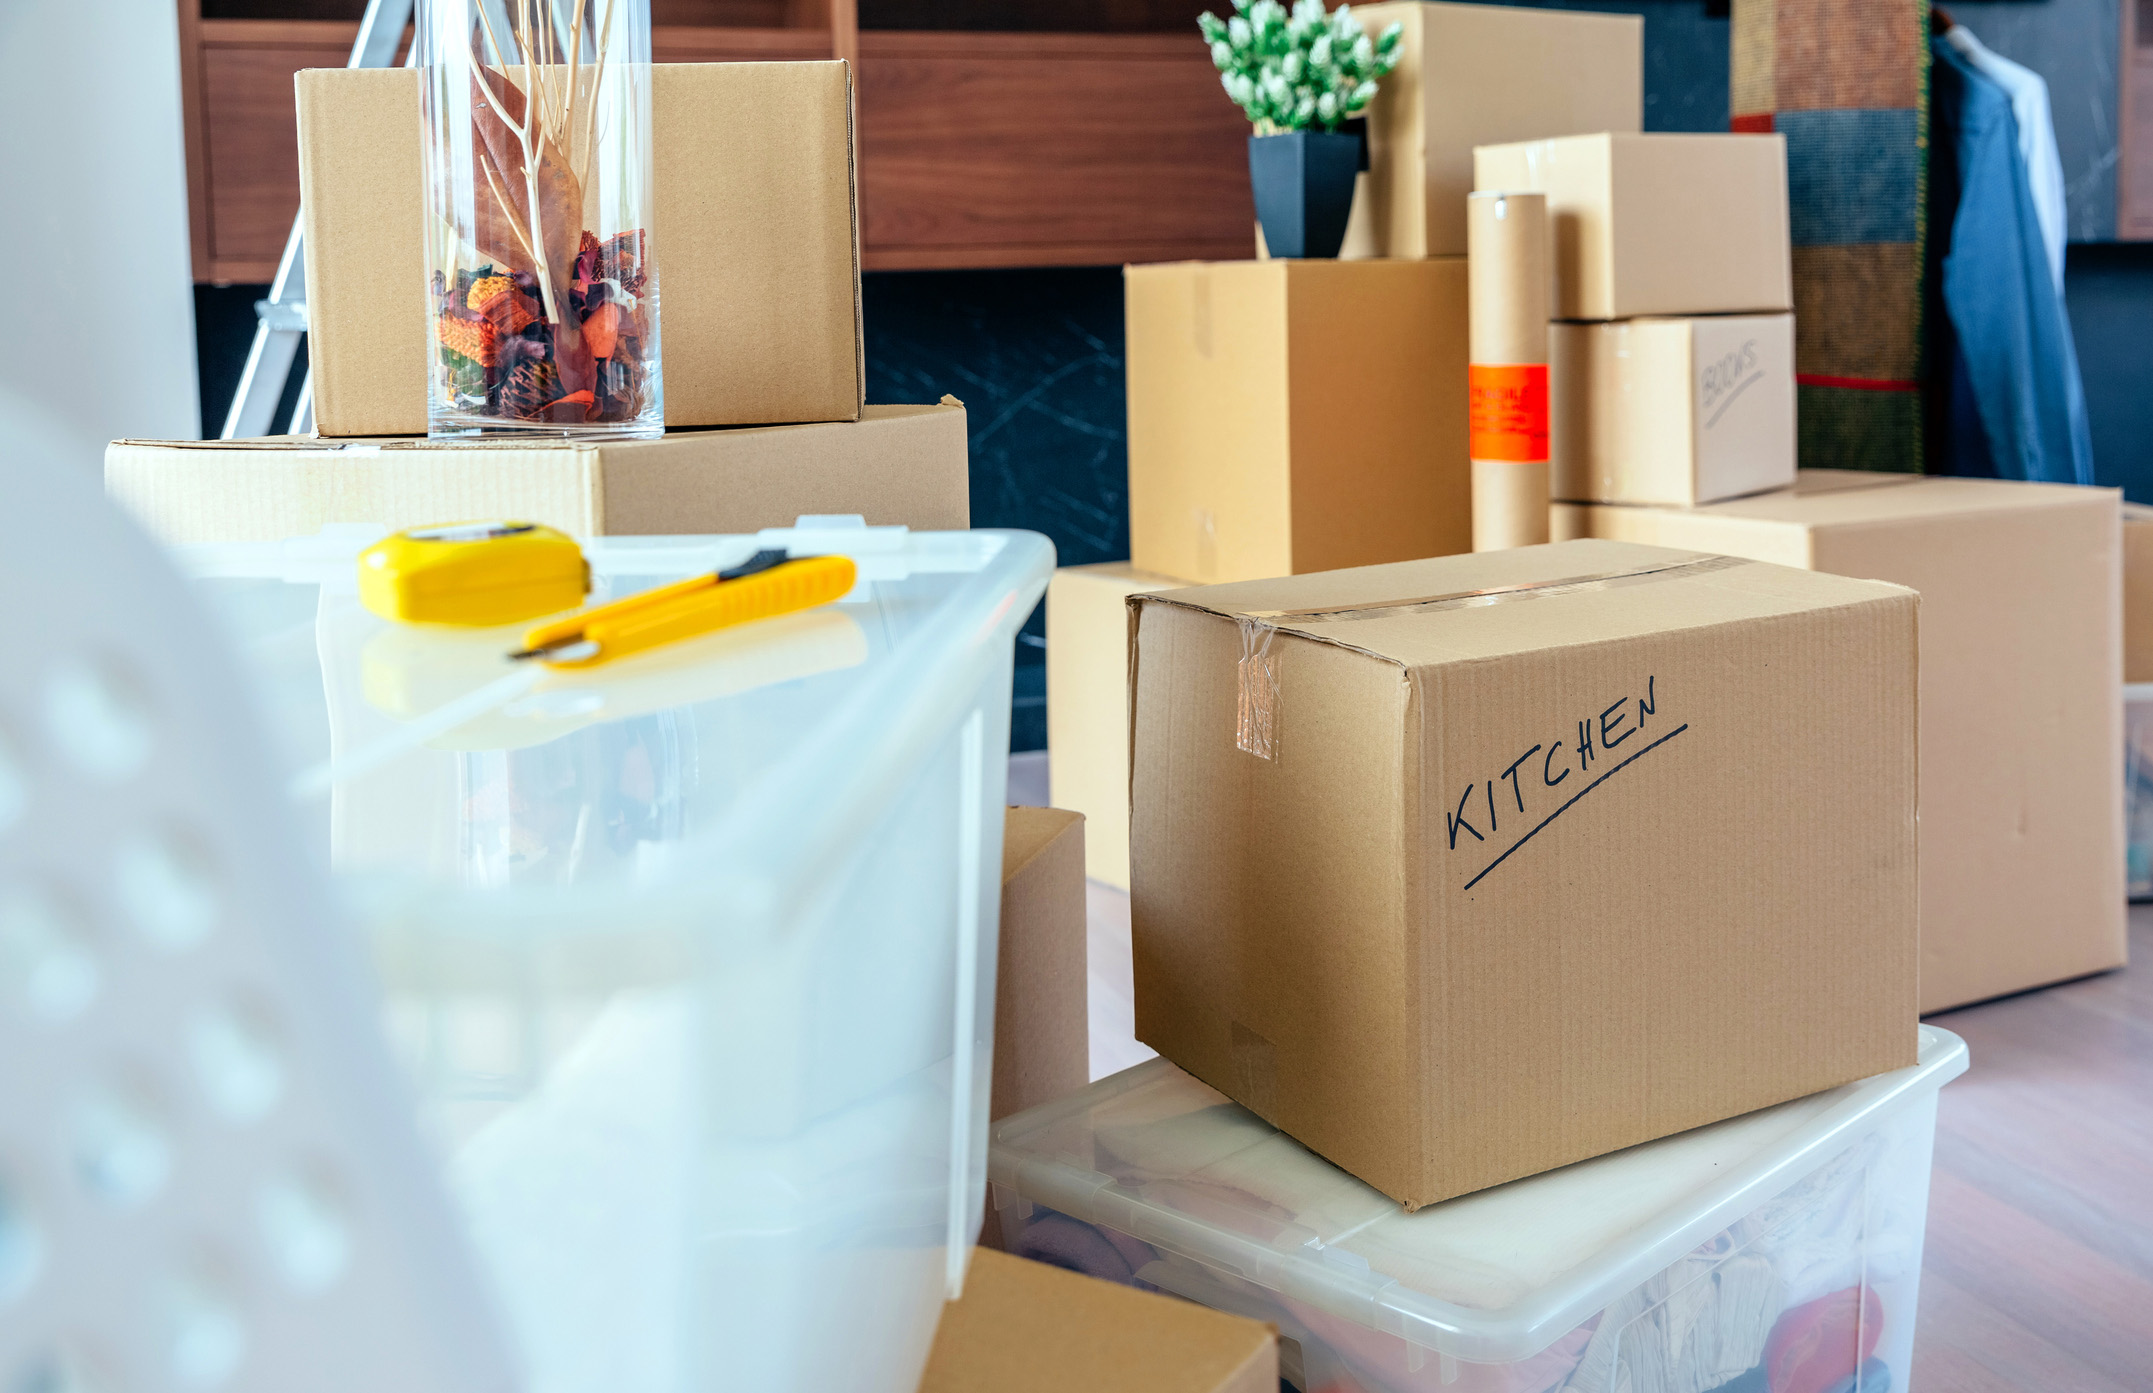 20 Tips for Perfectly Packing Your Belongings